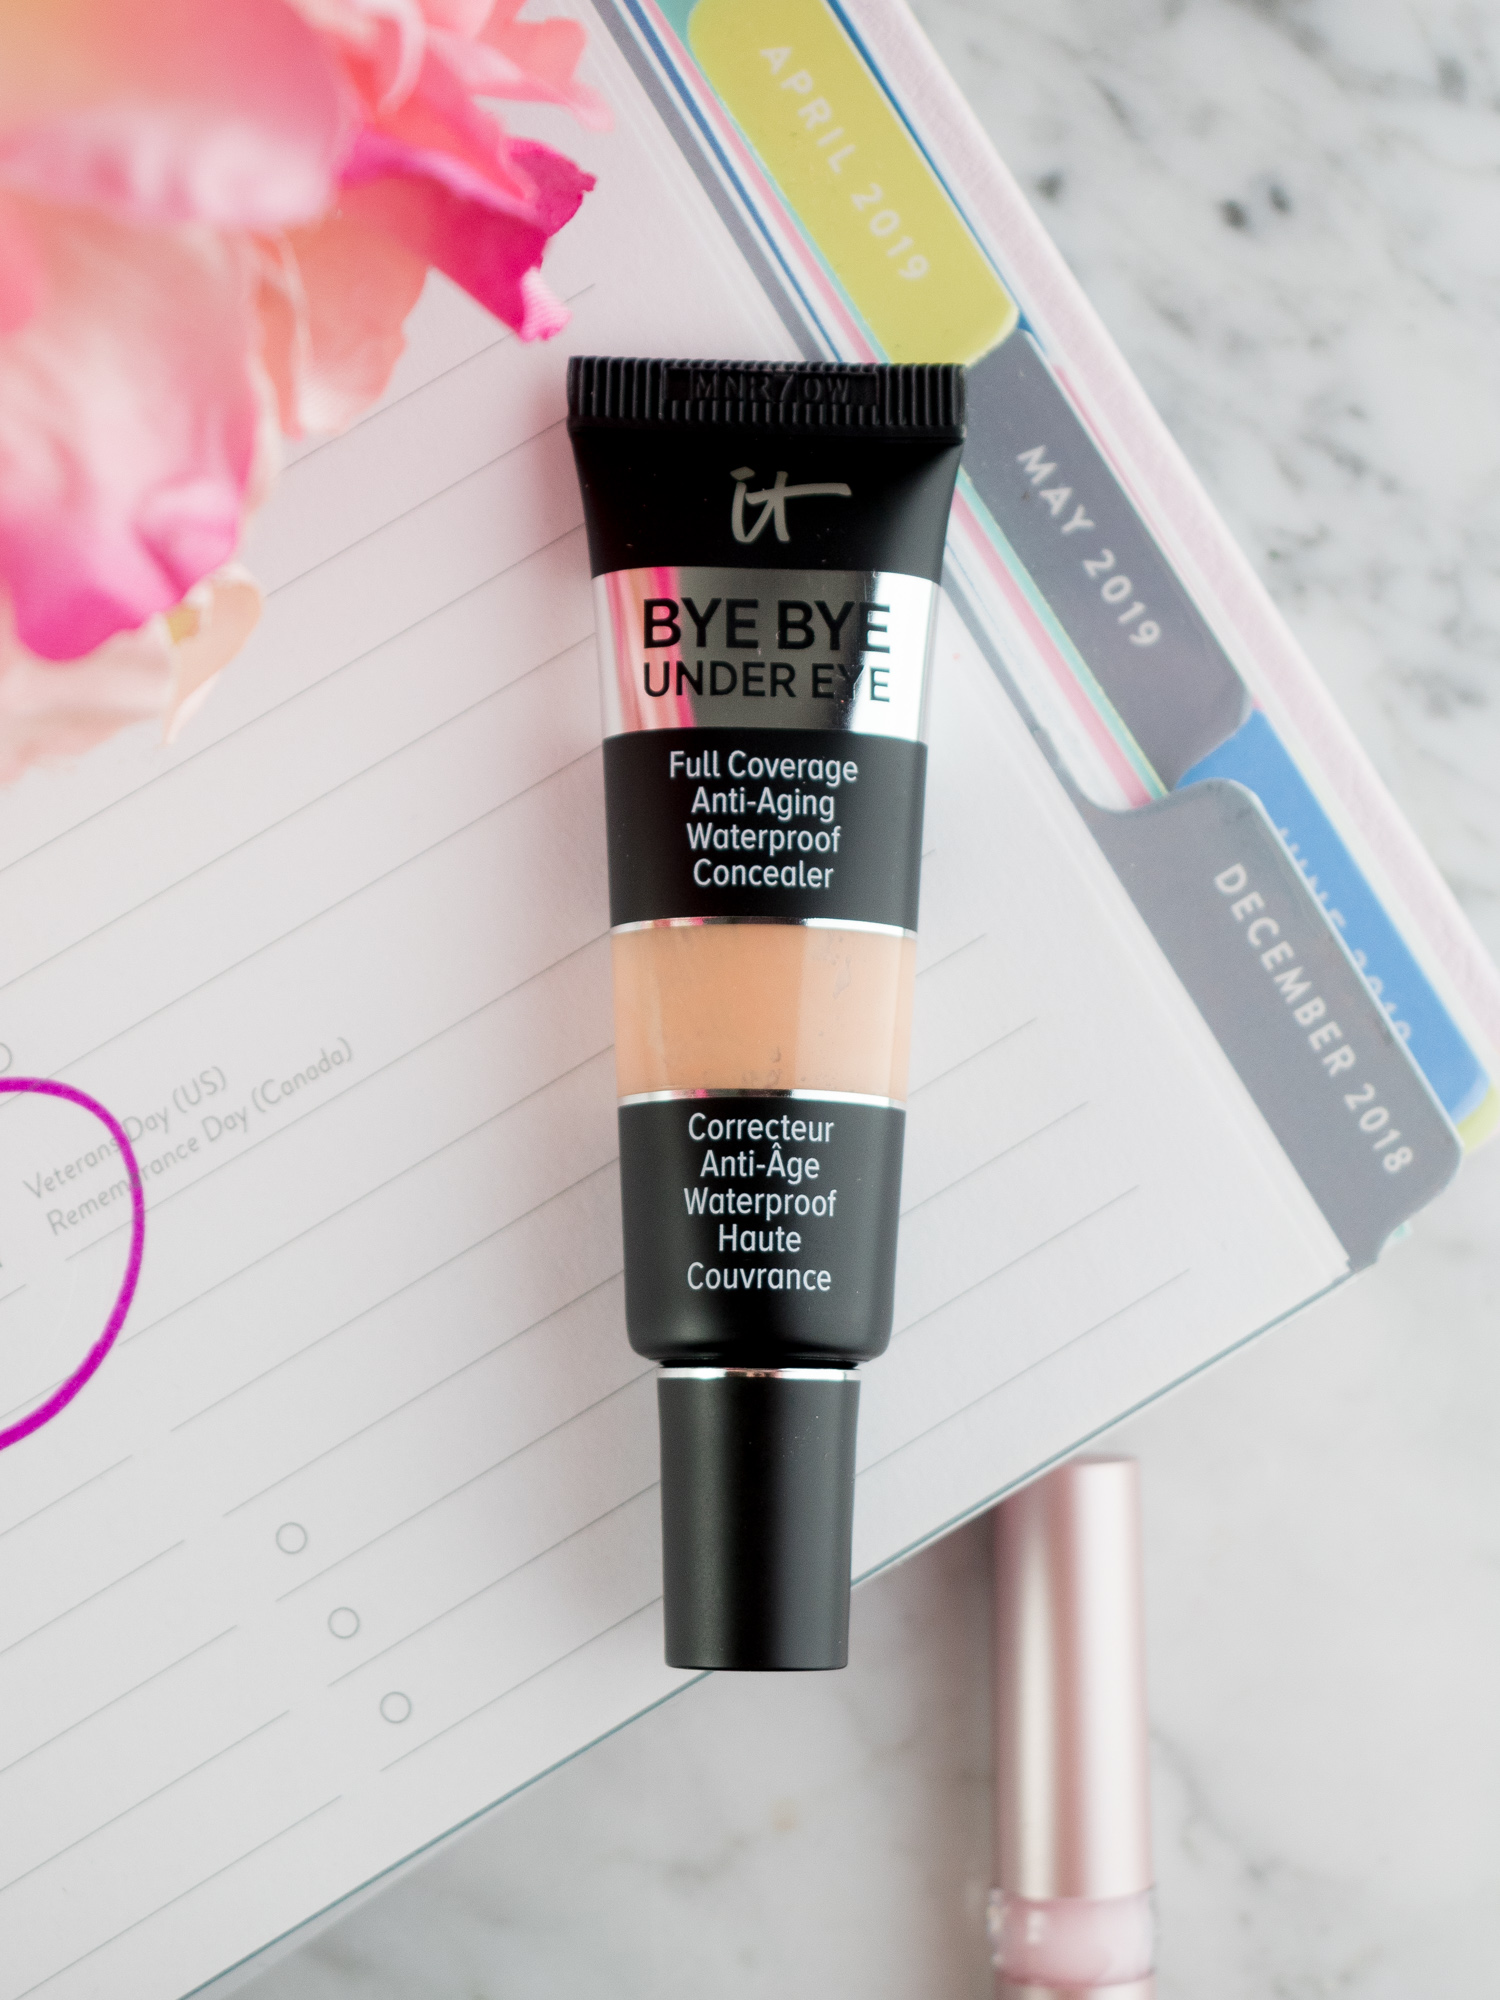 IT Cosmetics Holiday TSV Preview: Bye Bye Under Eye Concealer